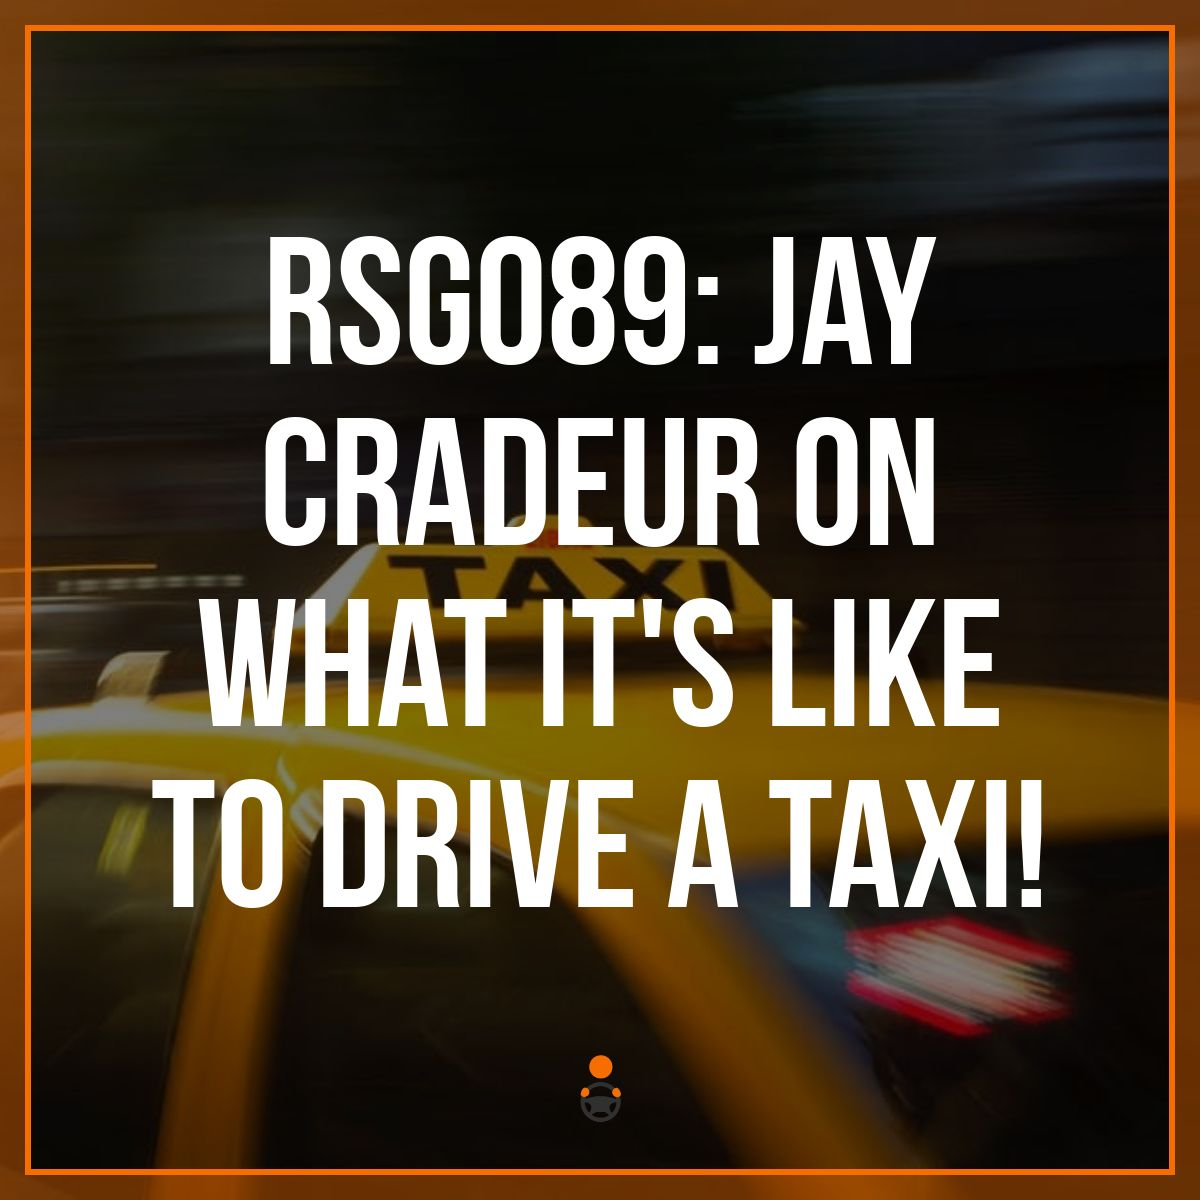 RSG089: Jay Cradeur on What It's Like to Drive a Taxi!